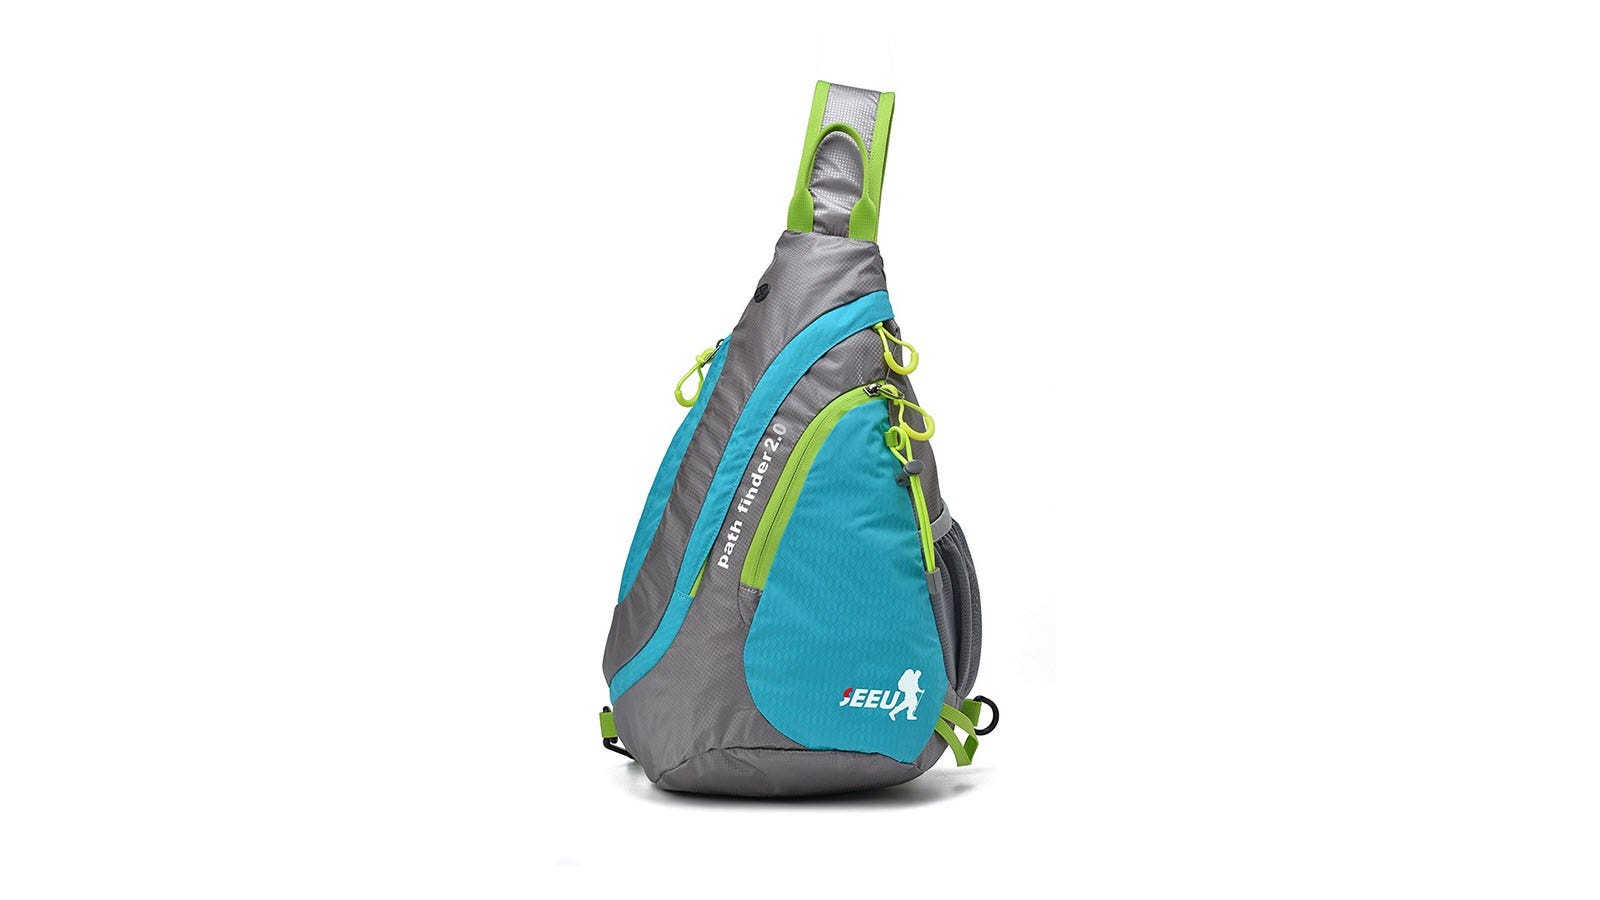 The SEEU Ultralight Water-resistant Shoulder Crossbody Bag seen from the back, in blue, grey, and green colors.